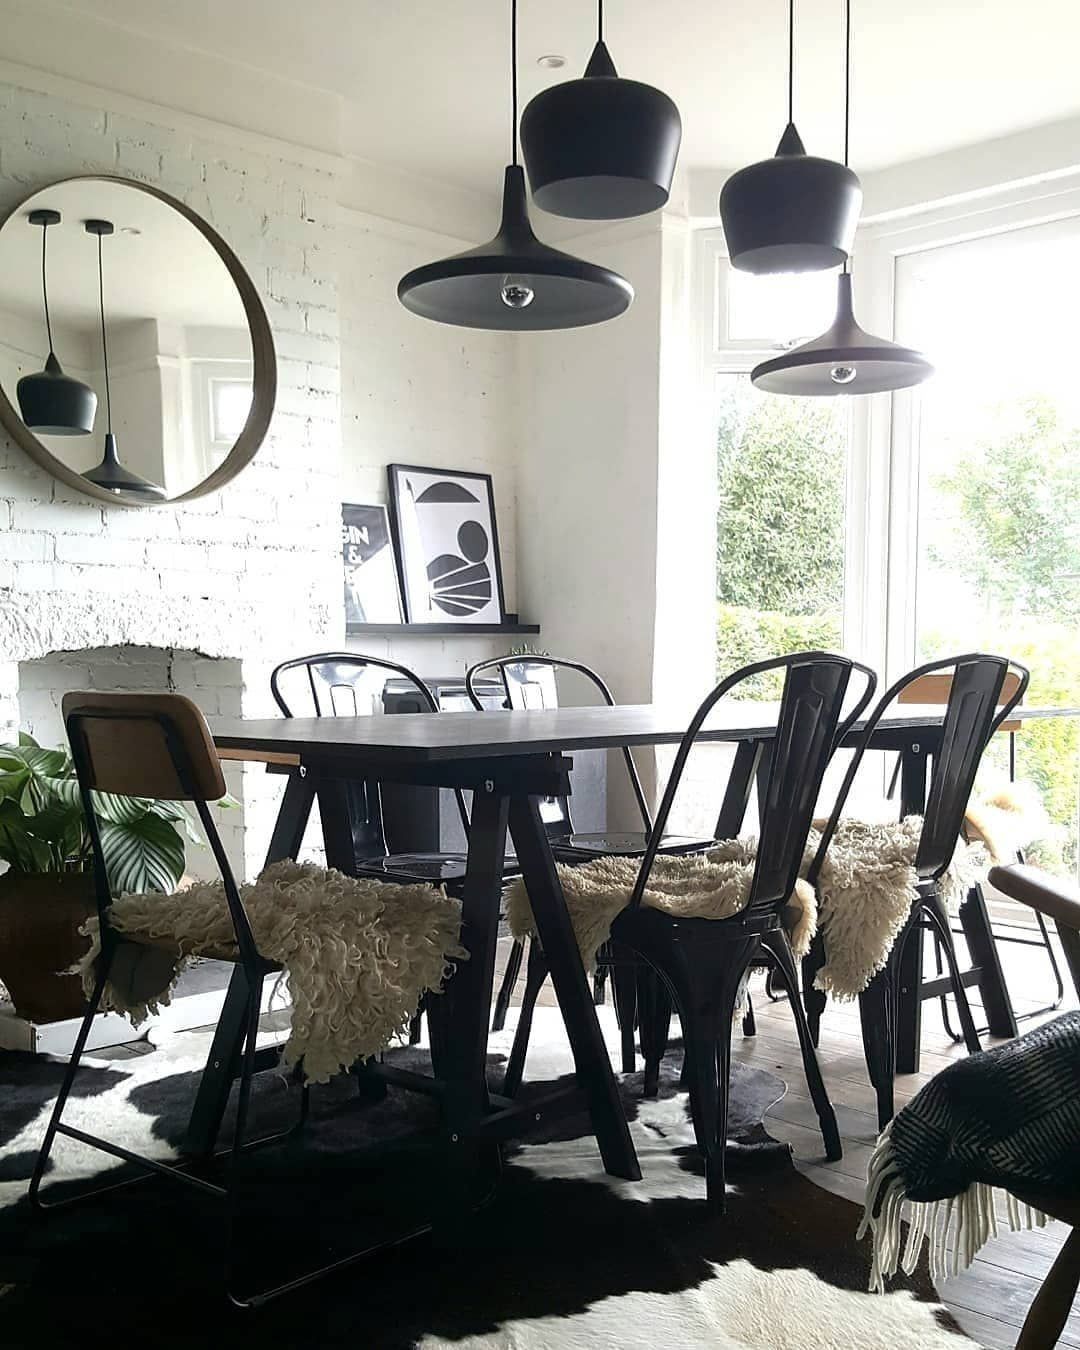 23 Industrial Dining Chairs Made Of Metal And Wood Dining Room